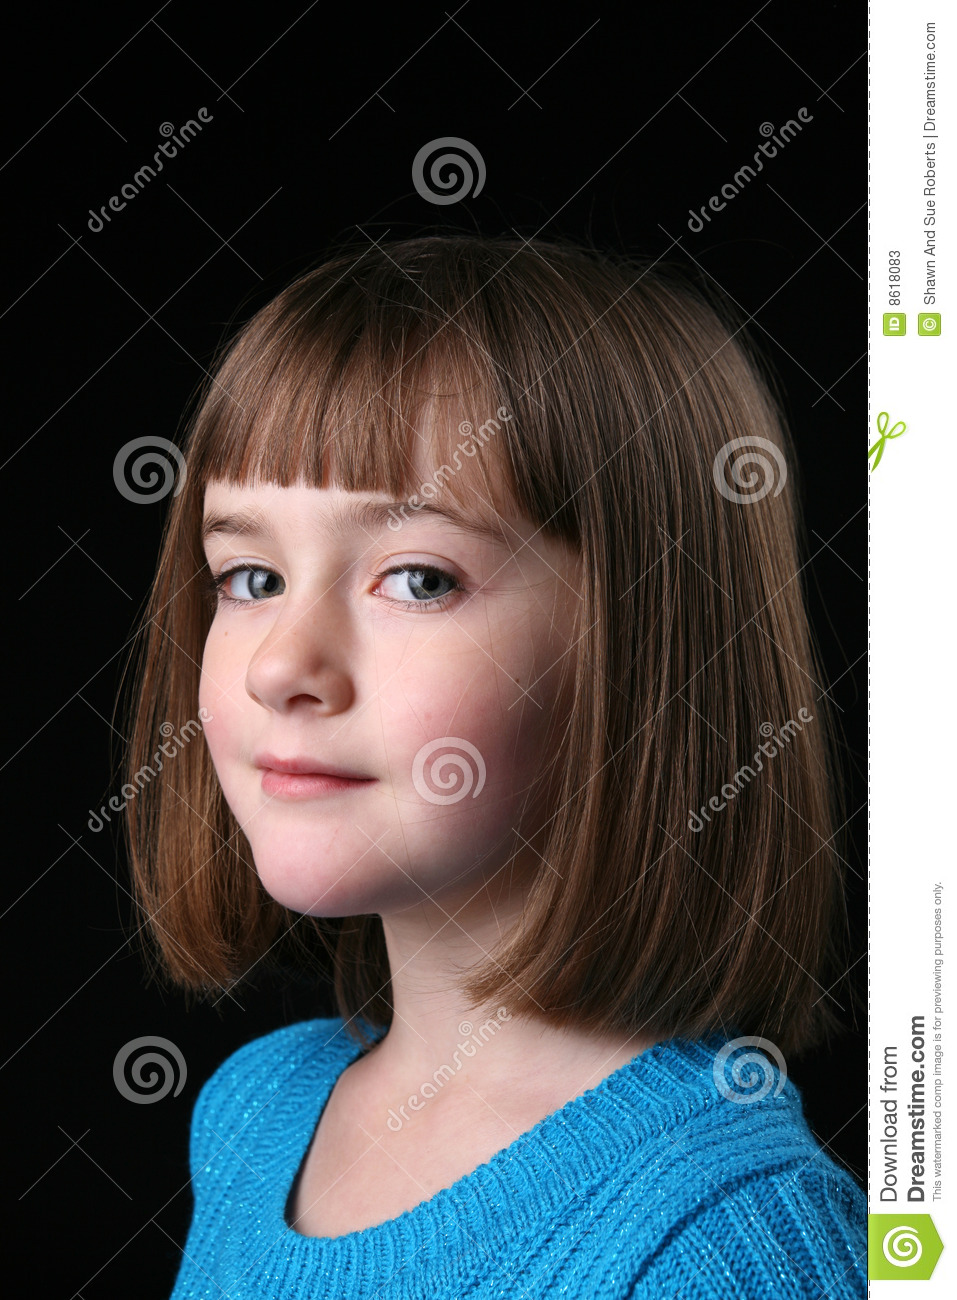 Cute Girl With Straight Hair And A Sideways Glance Stock